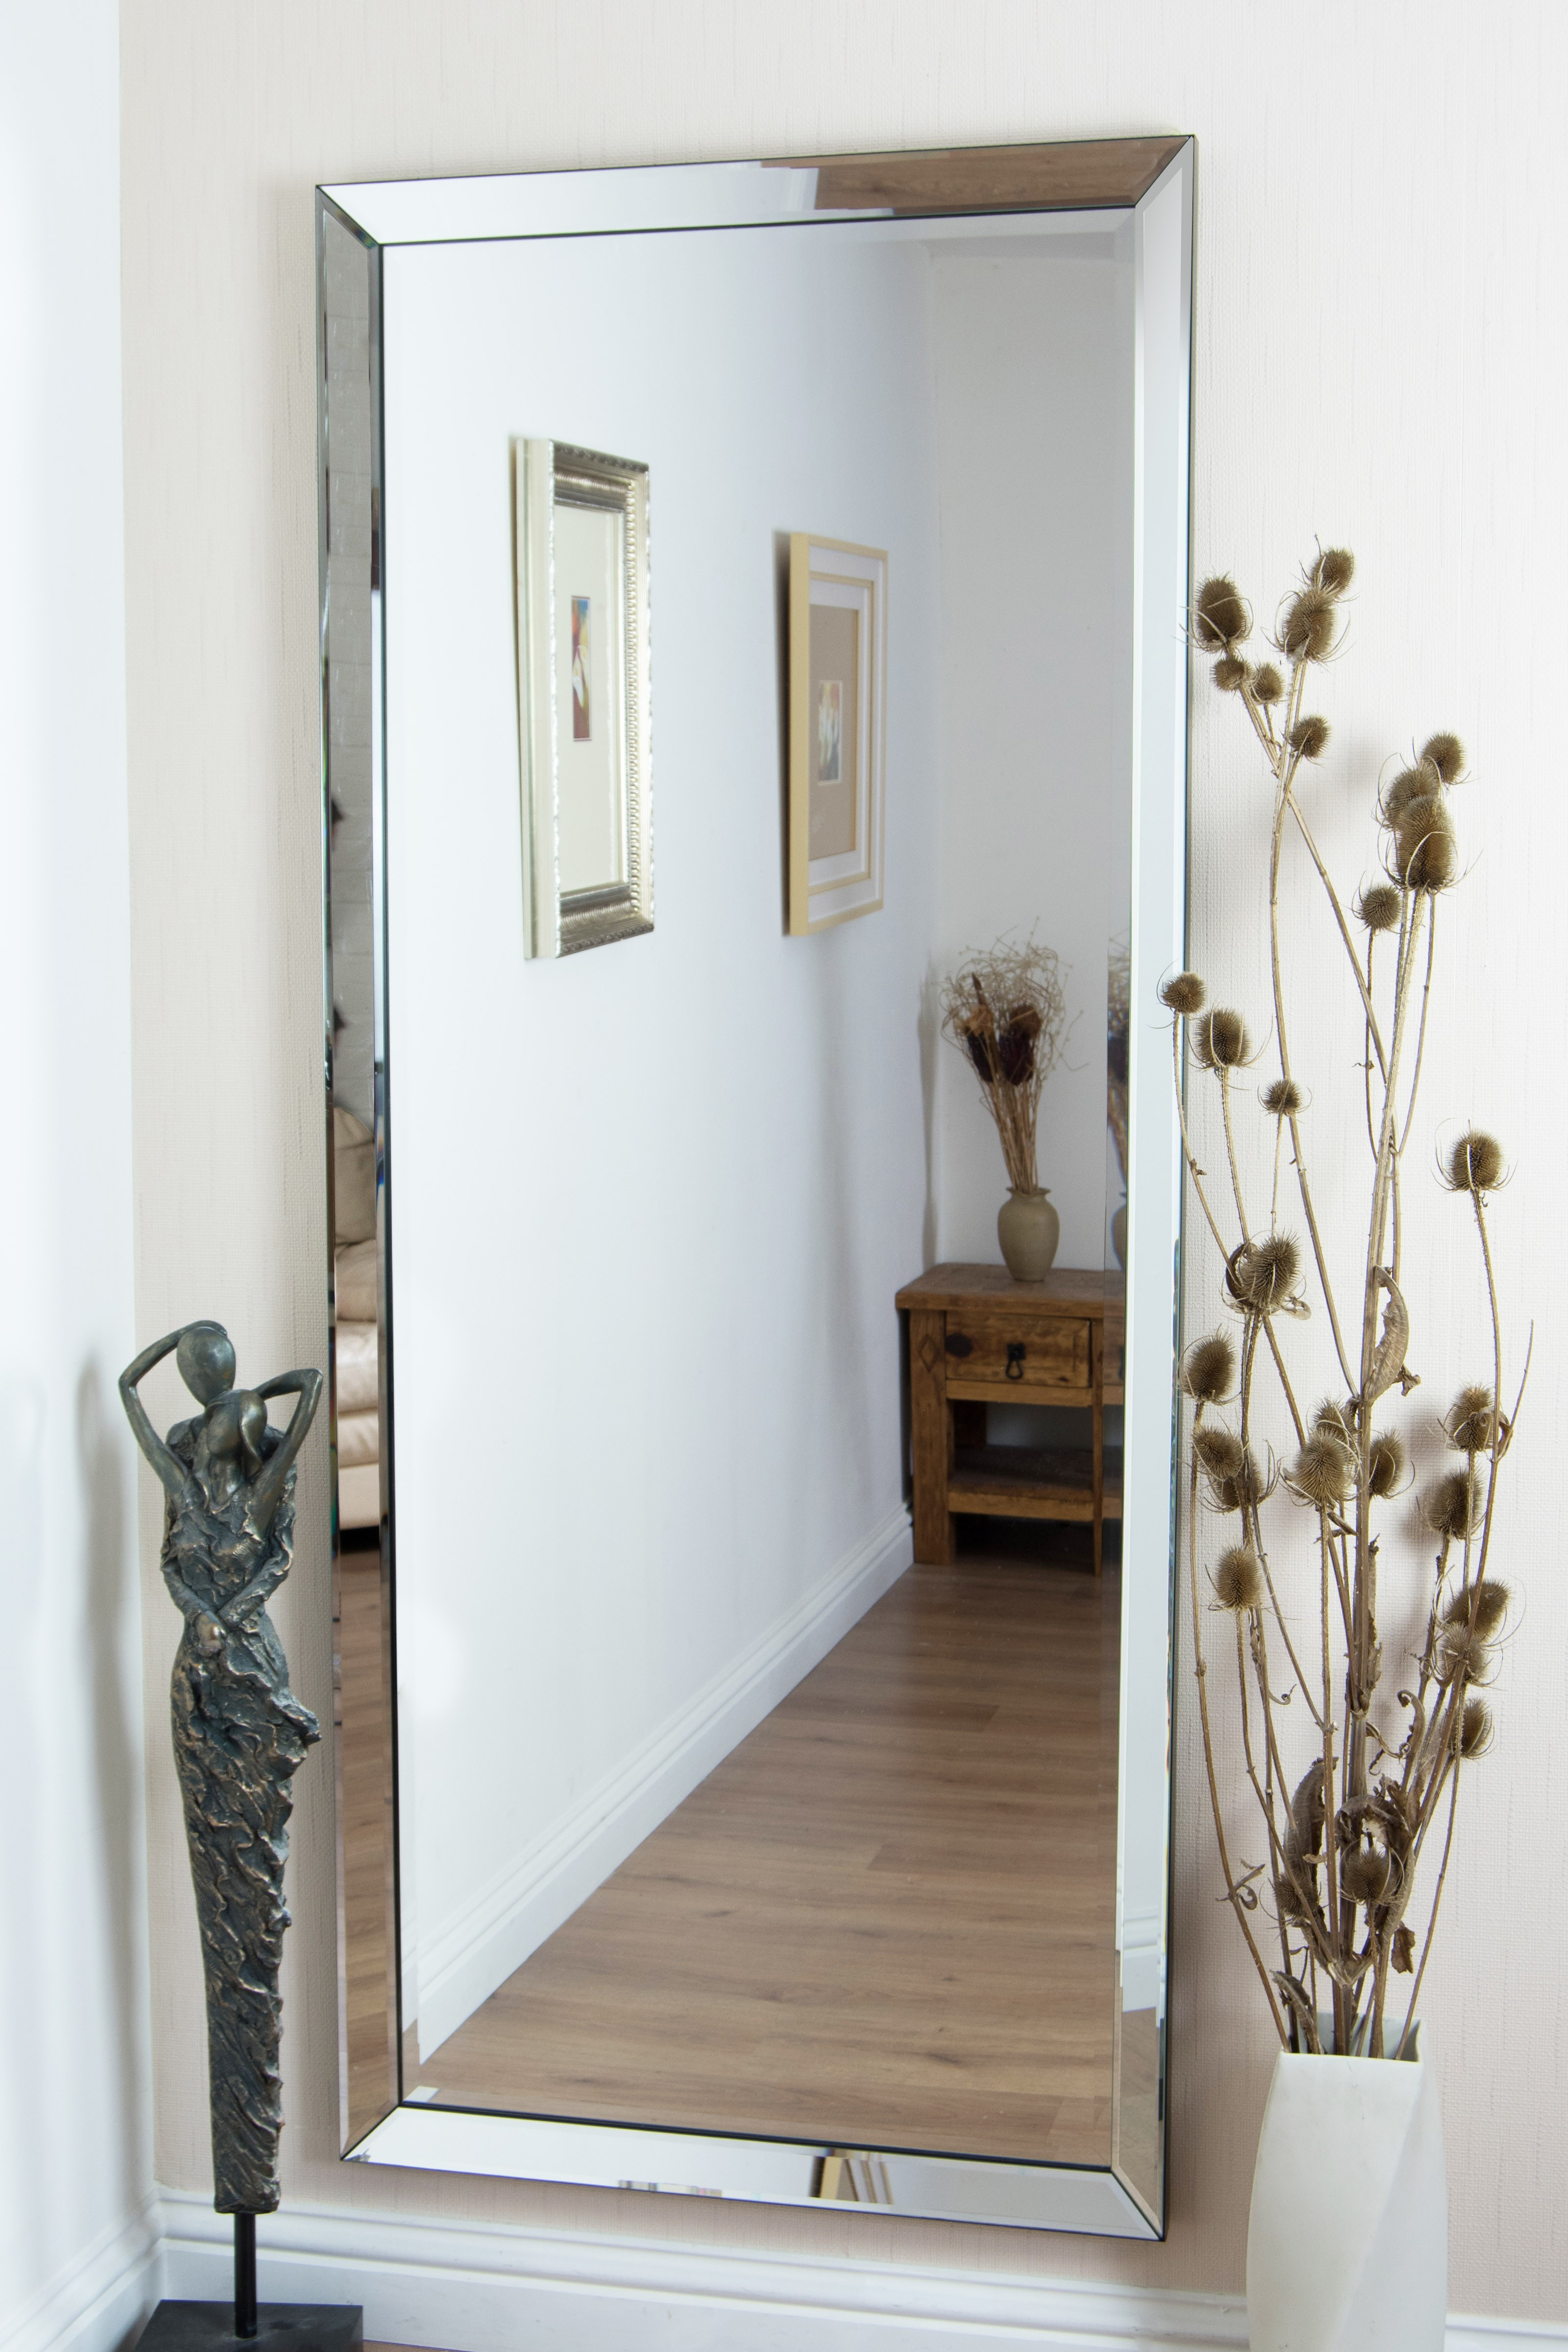 Unique Full Length Wall Mirrors Photos Mirror Decorative With Modern & Contemporary Full Length Mirrors (View 14 of 30)